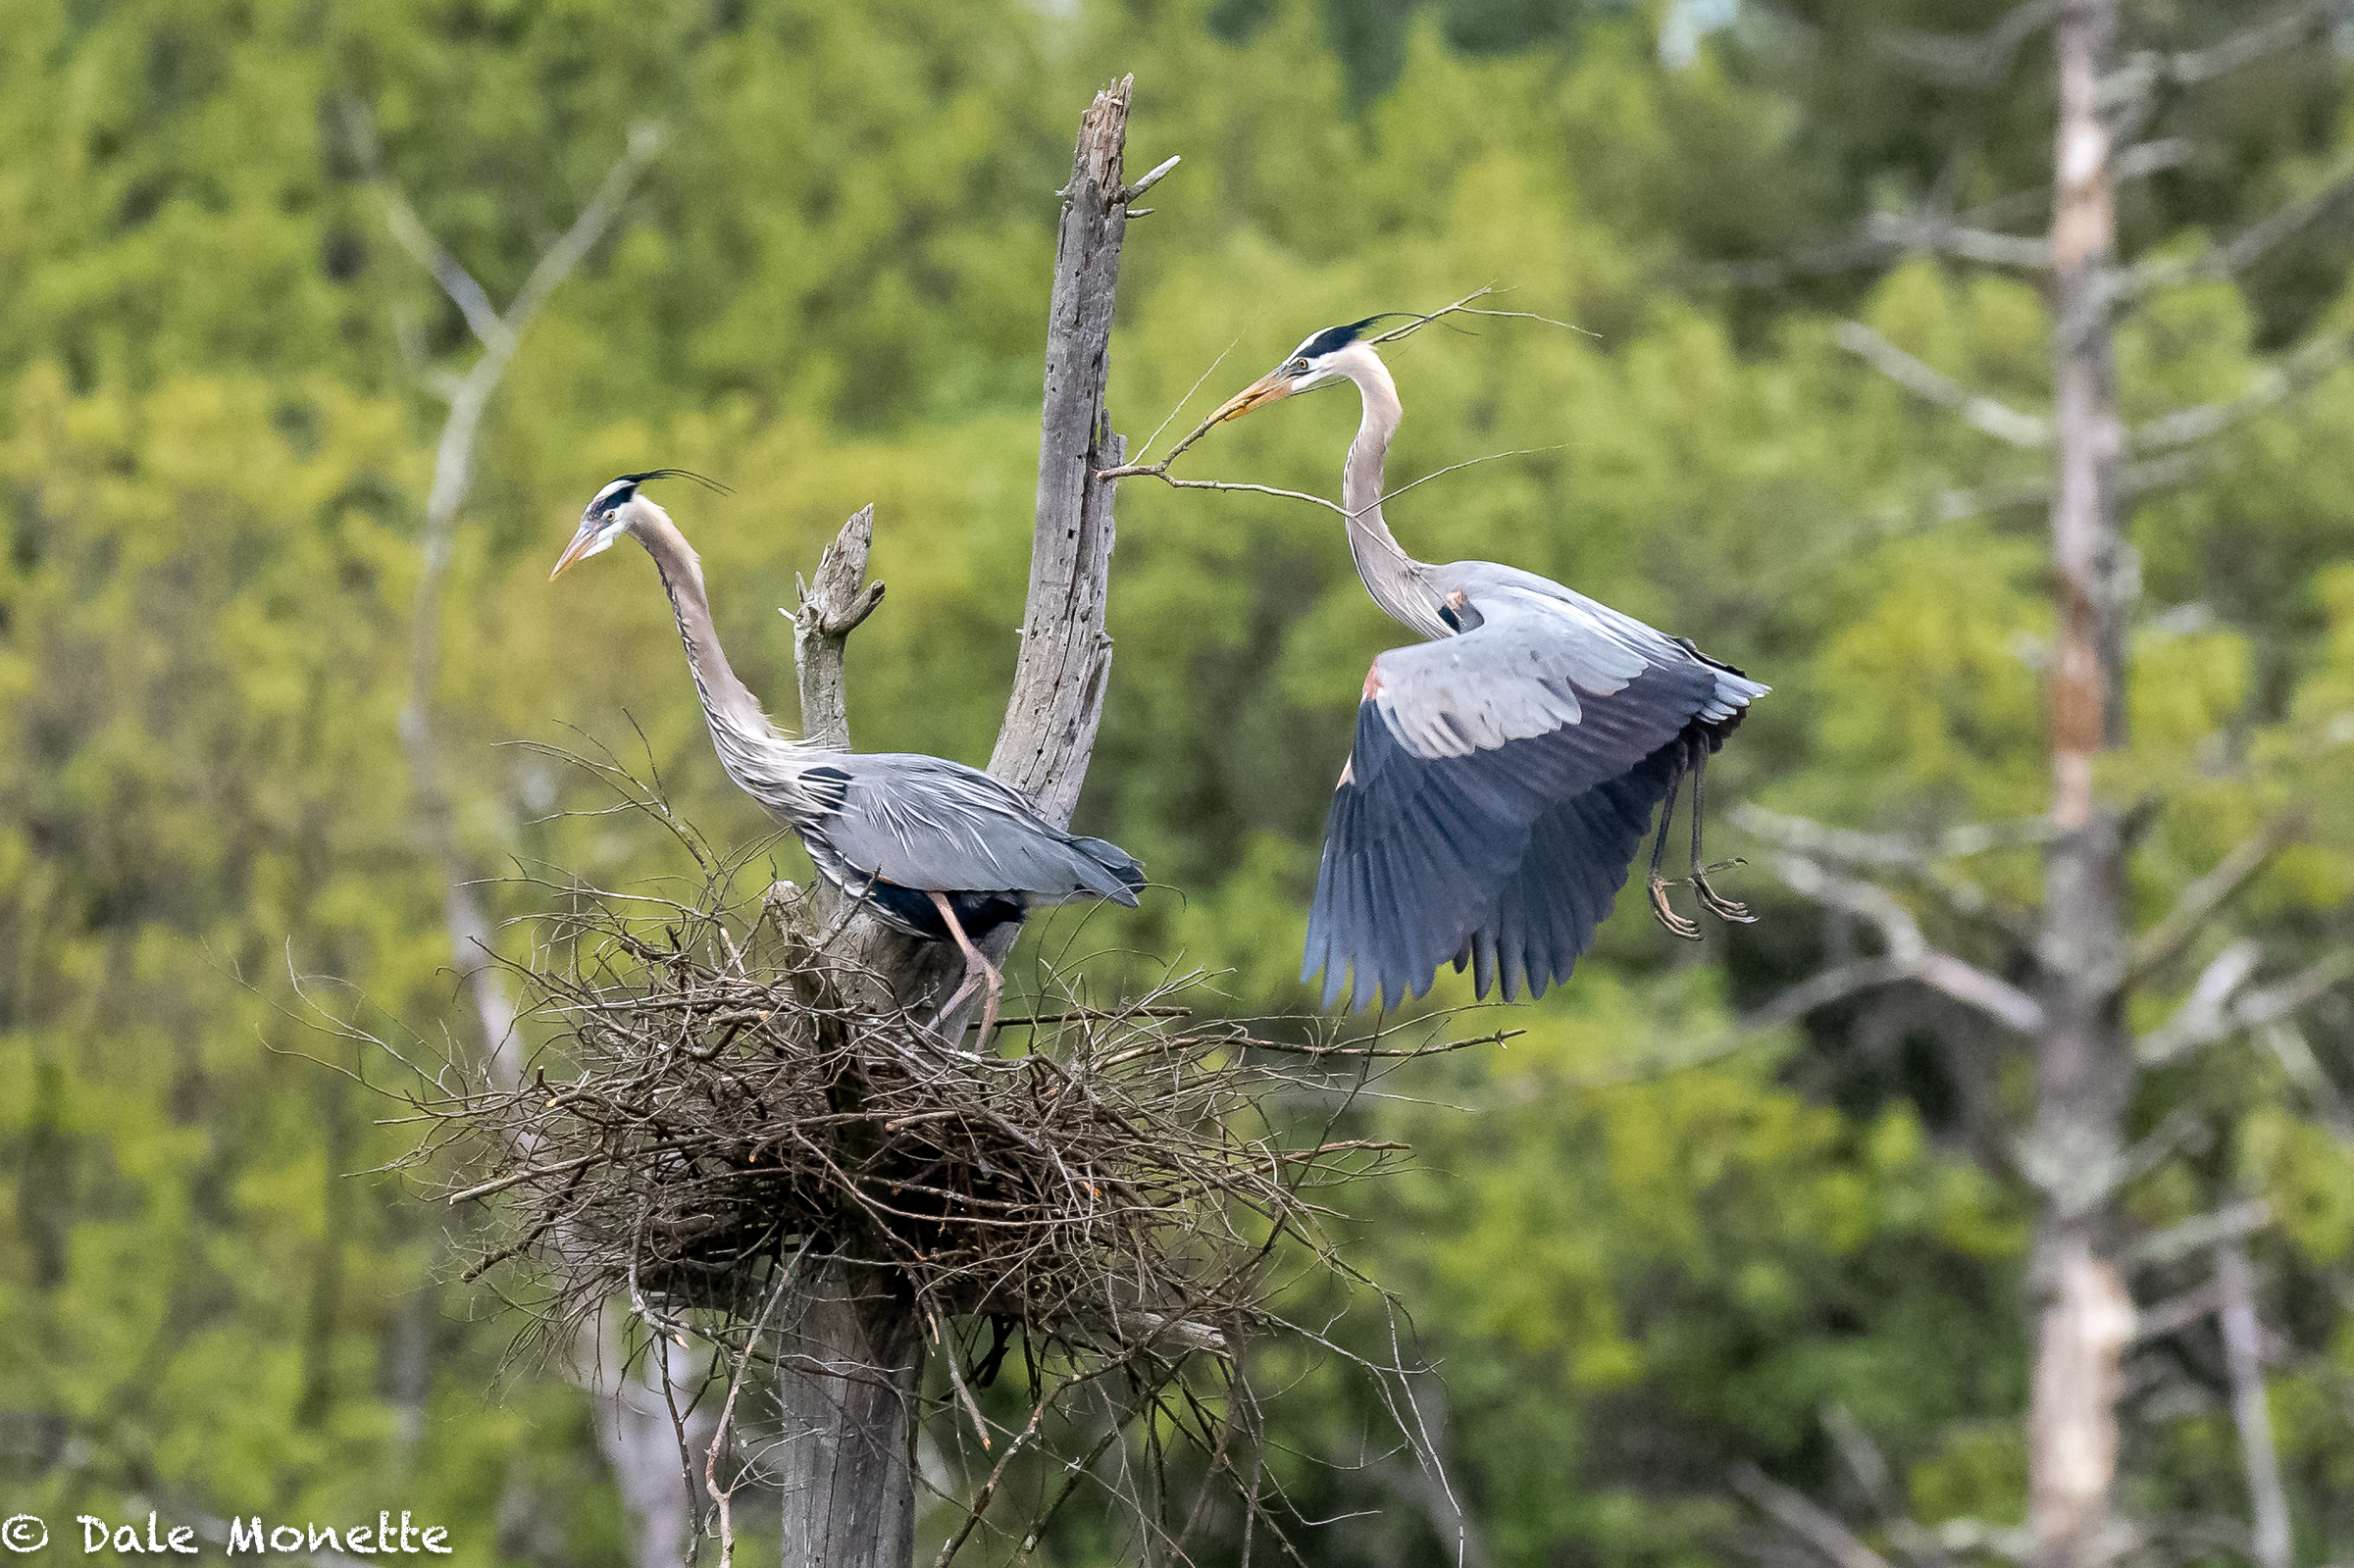 A late nesting great blue heron pair works soon getting up a new nest. The male brings in the sticks and the female places them where she wants them, and this goes on over and over for 3 to 4 days until she is ready for eggs.